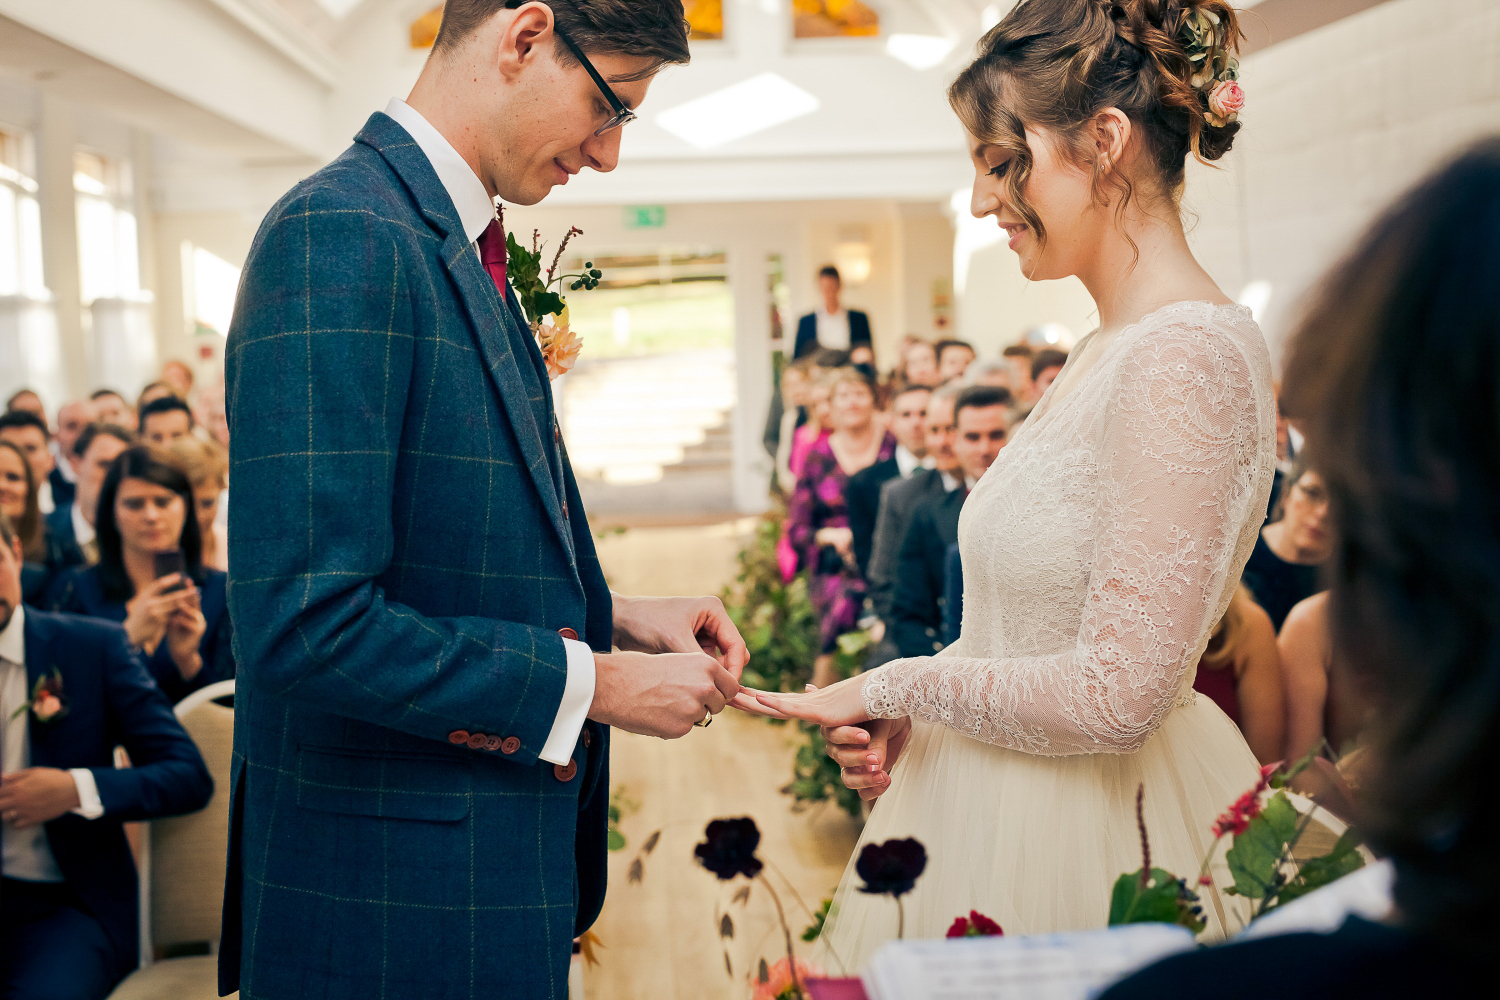 Groom puts the wedding ring on his bride's finger in the Belvedere Room at Pembroke Lodge